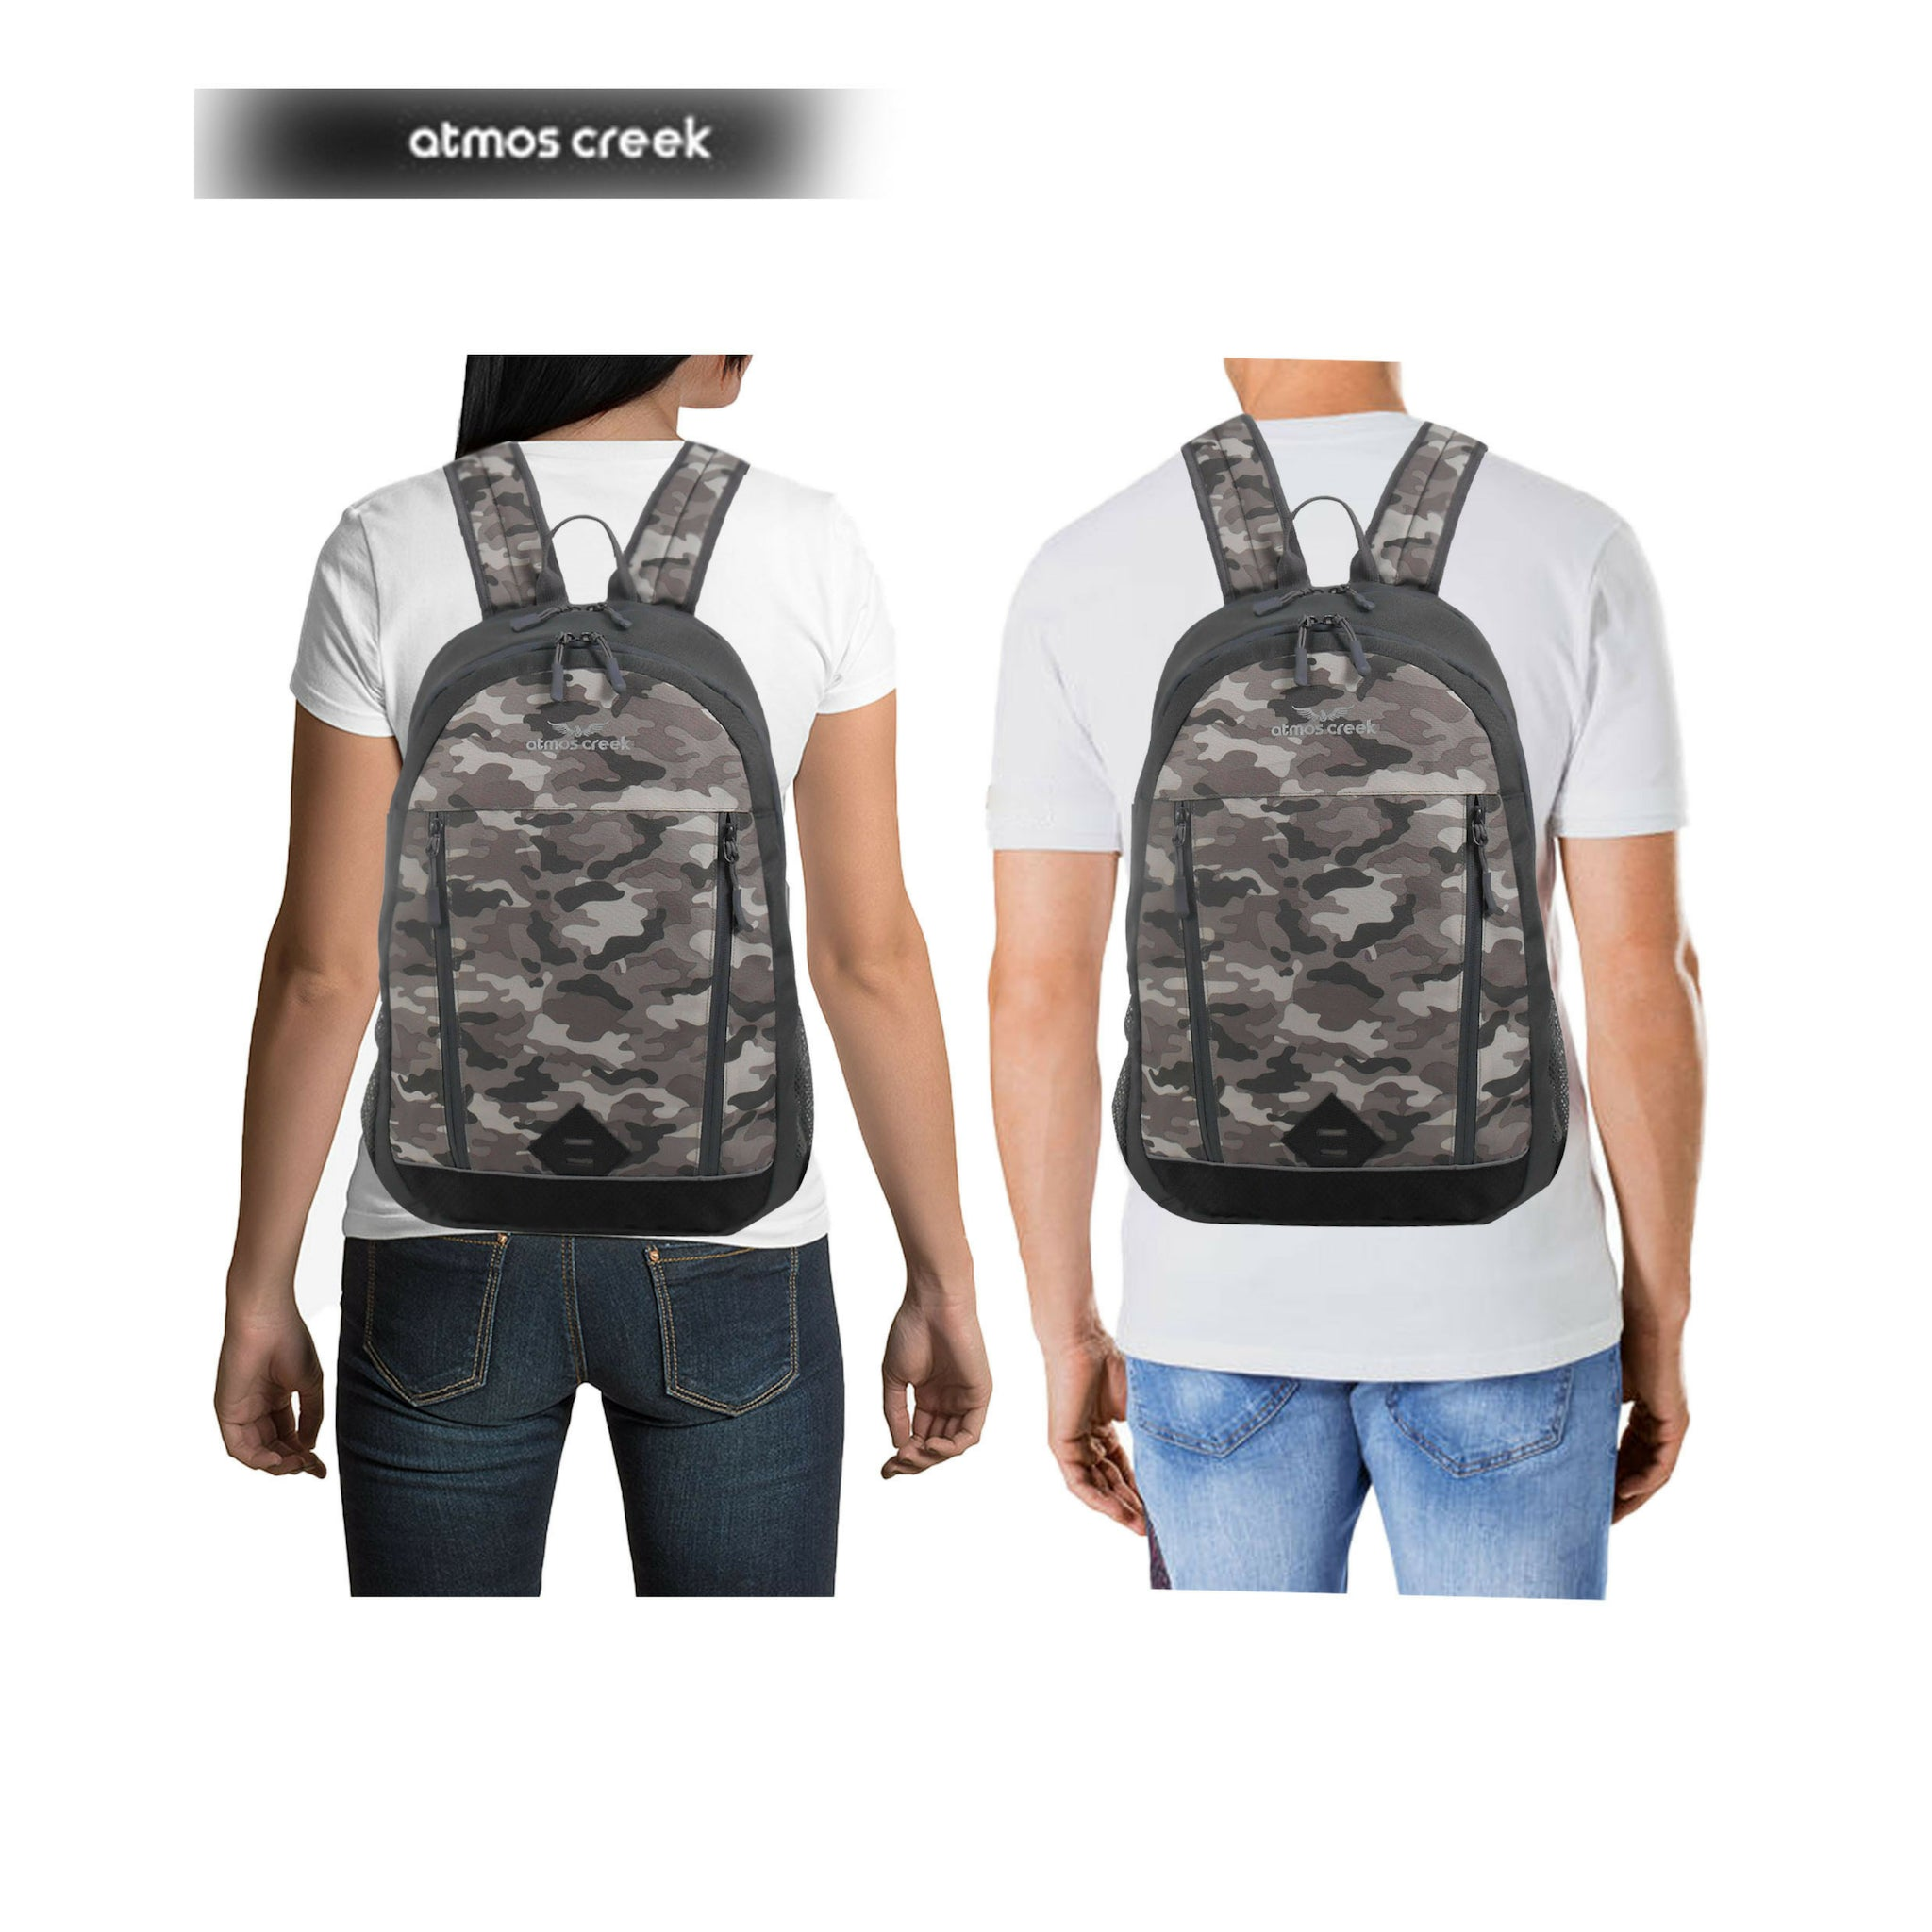 Camouflage casual backpack with laptop compartment for boys and girls Atmos Creek